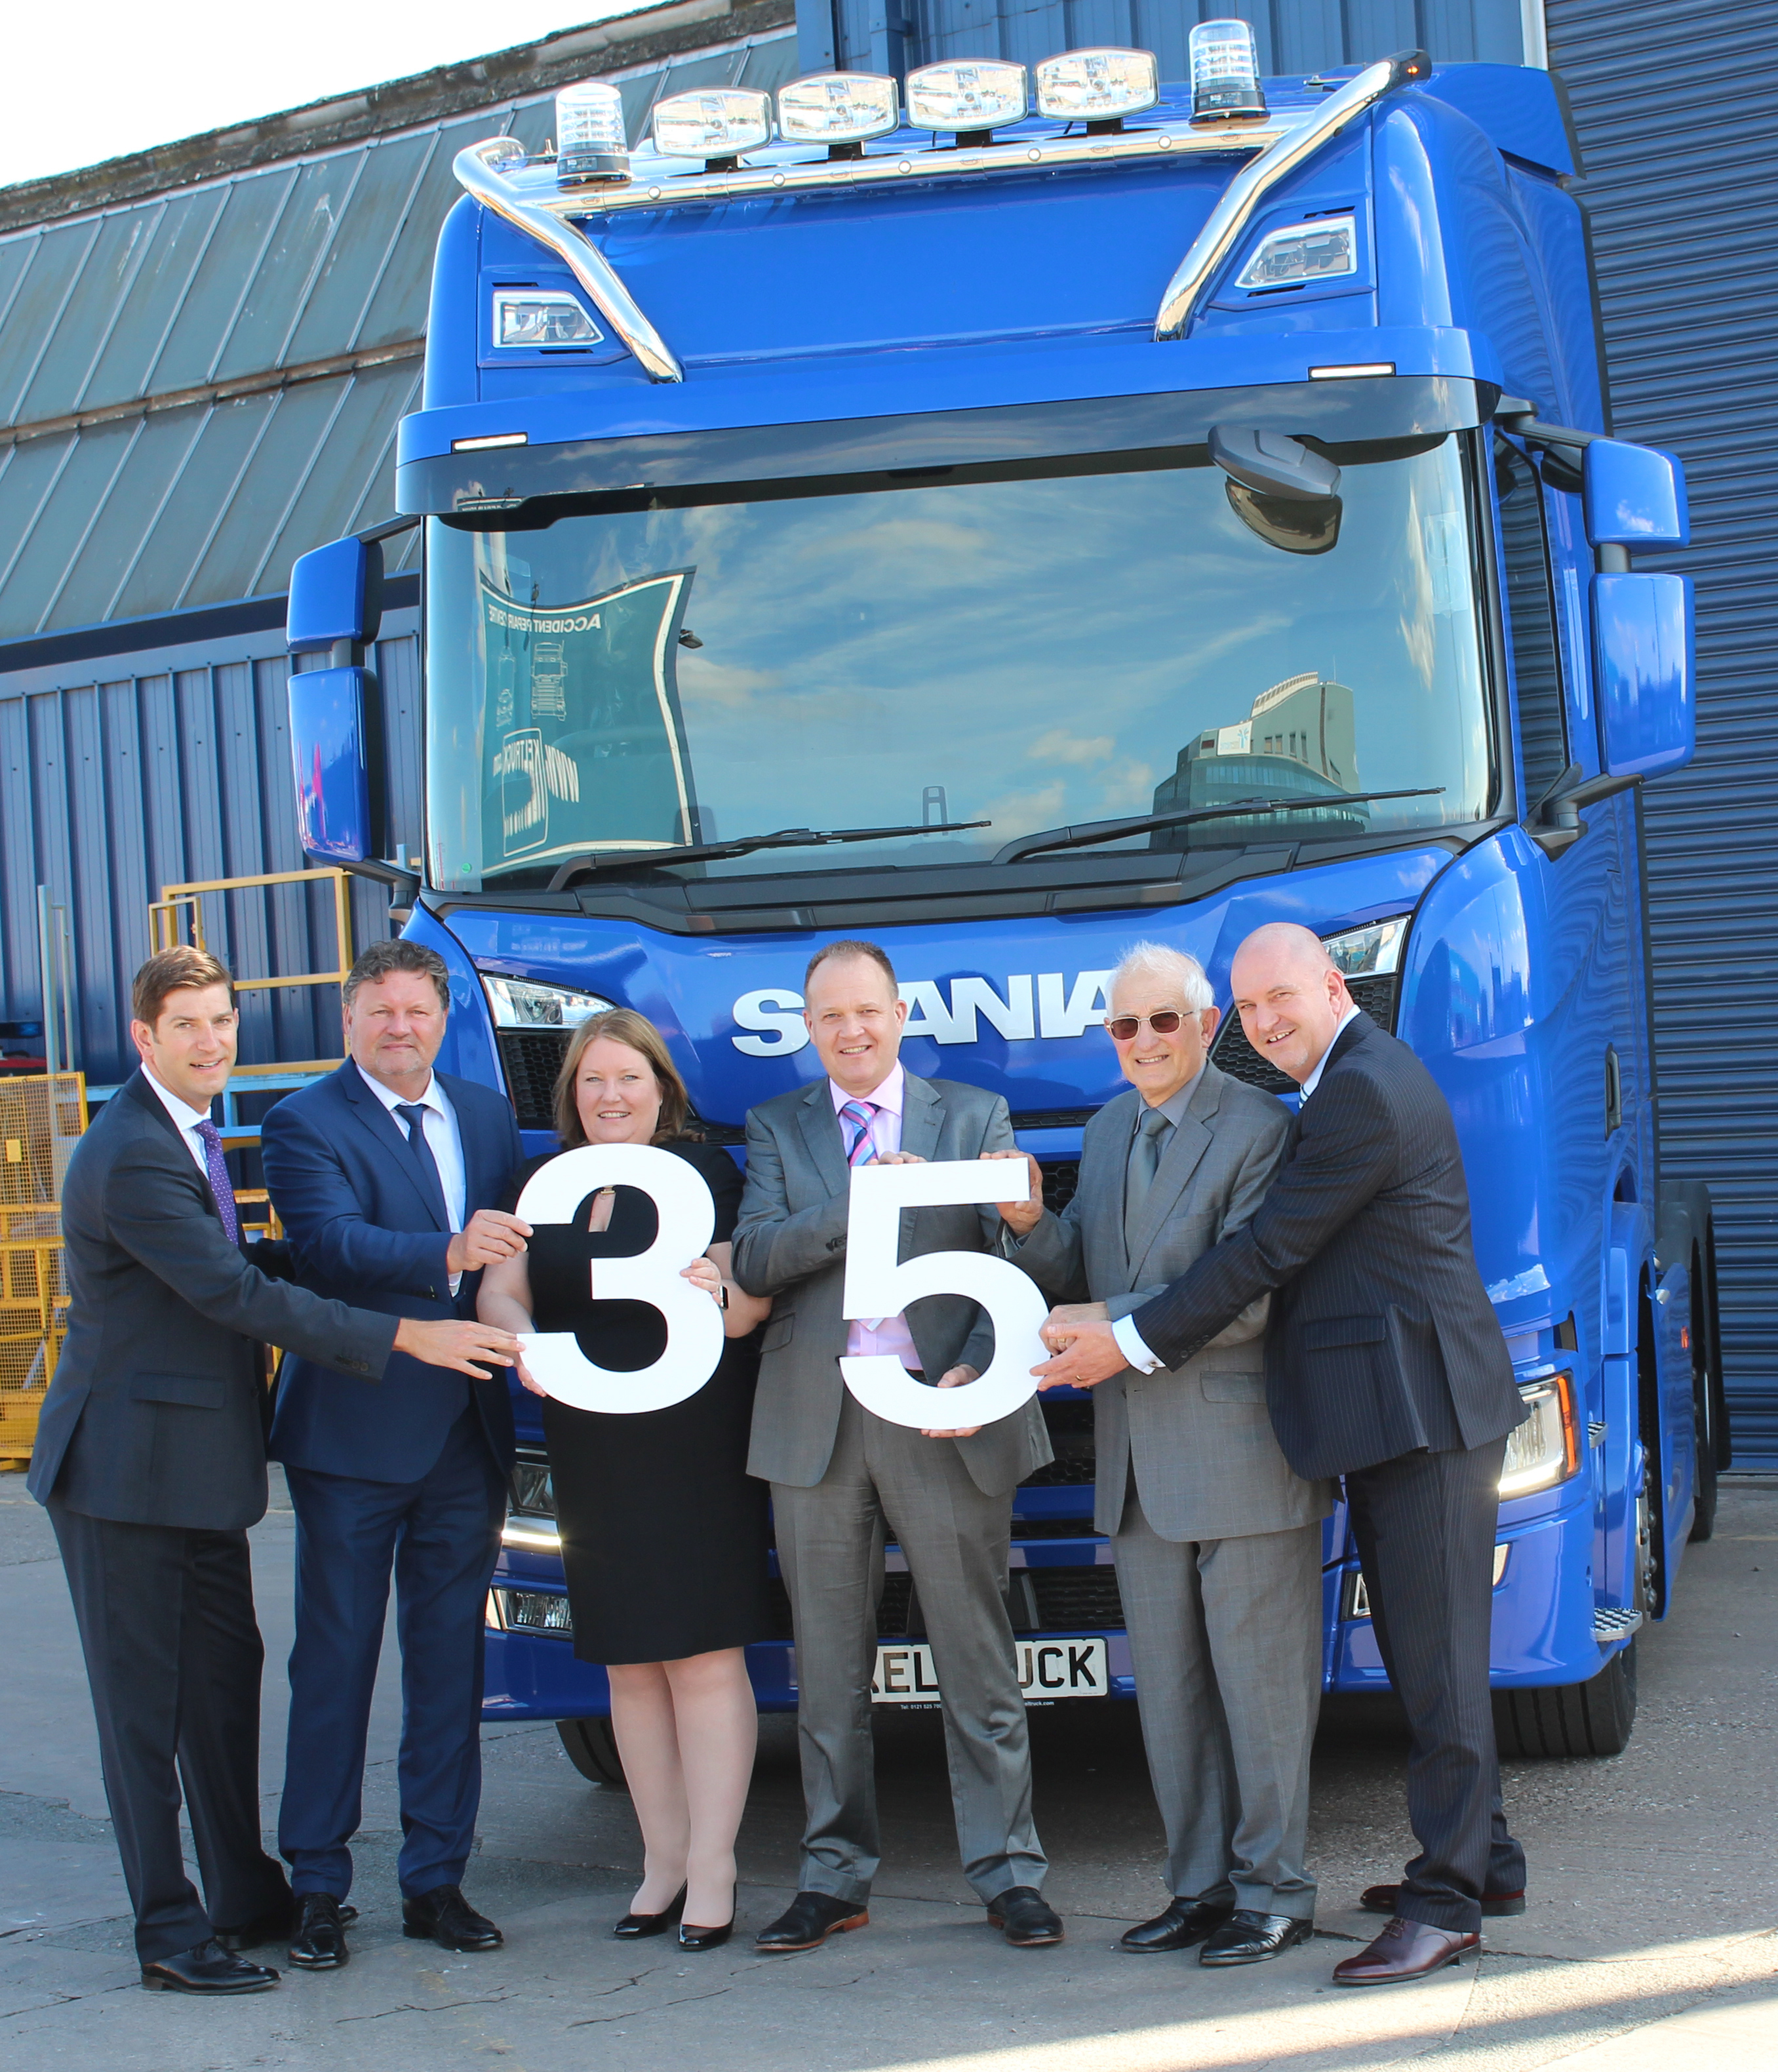 Keltruck Scania 35th anniversary, 2018